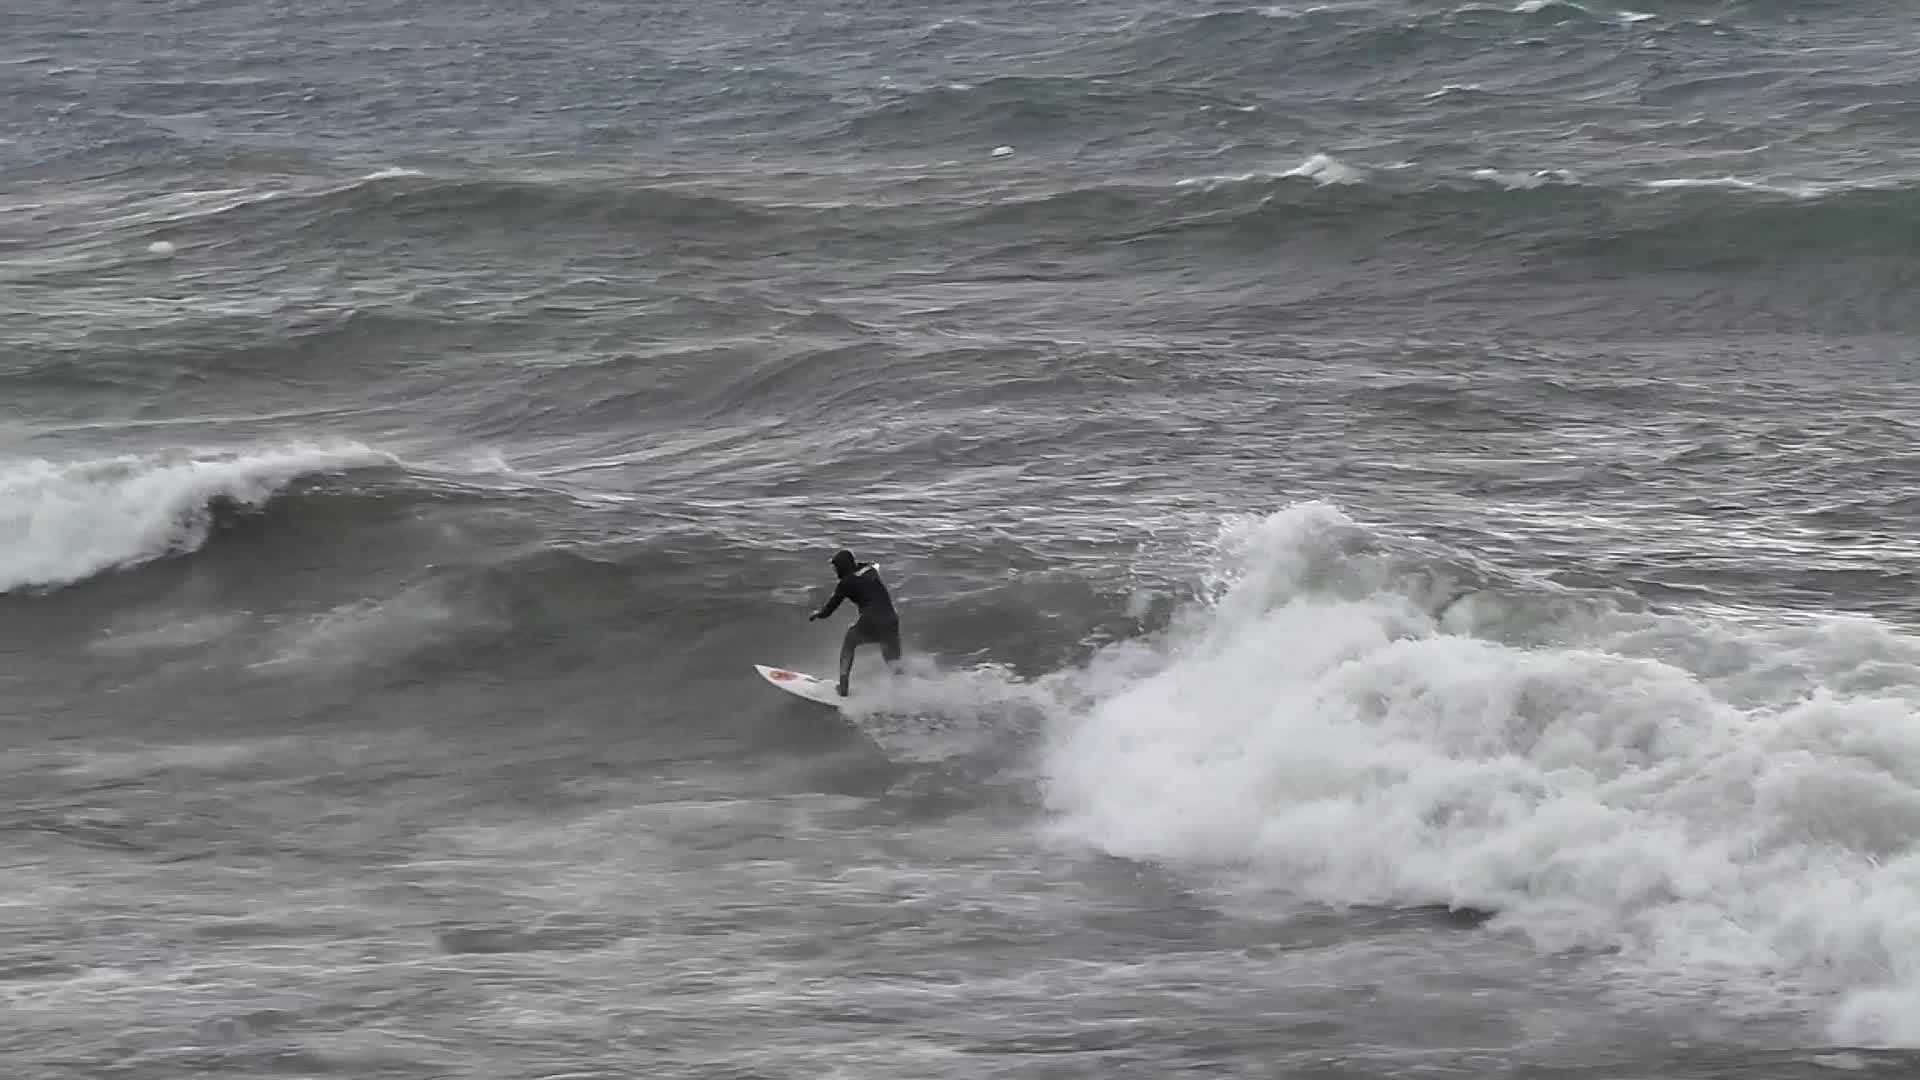 Thursday's weather conditions in Northern California made for some ripe conditions for surfing on Lake Tahoe. (Video courtesy of Keith Thomas)